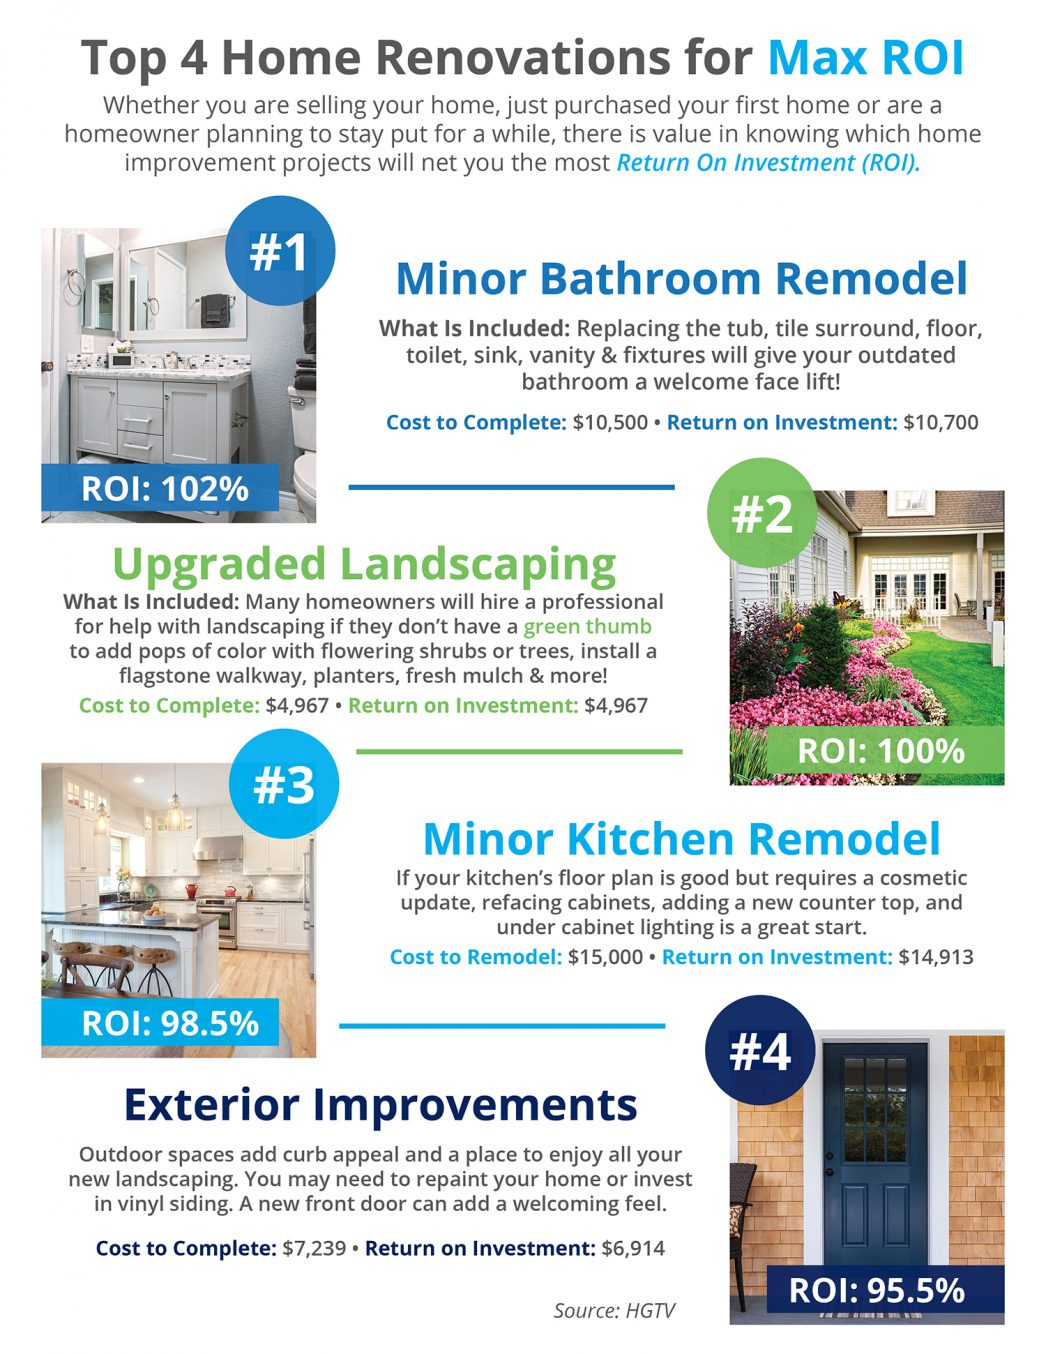 Top 4 home renovations for max roi infographic keeping for Best return on investment home improvements